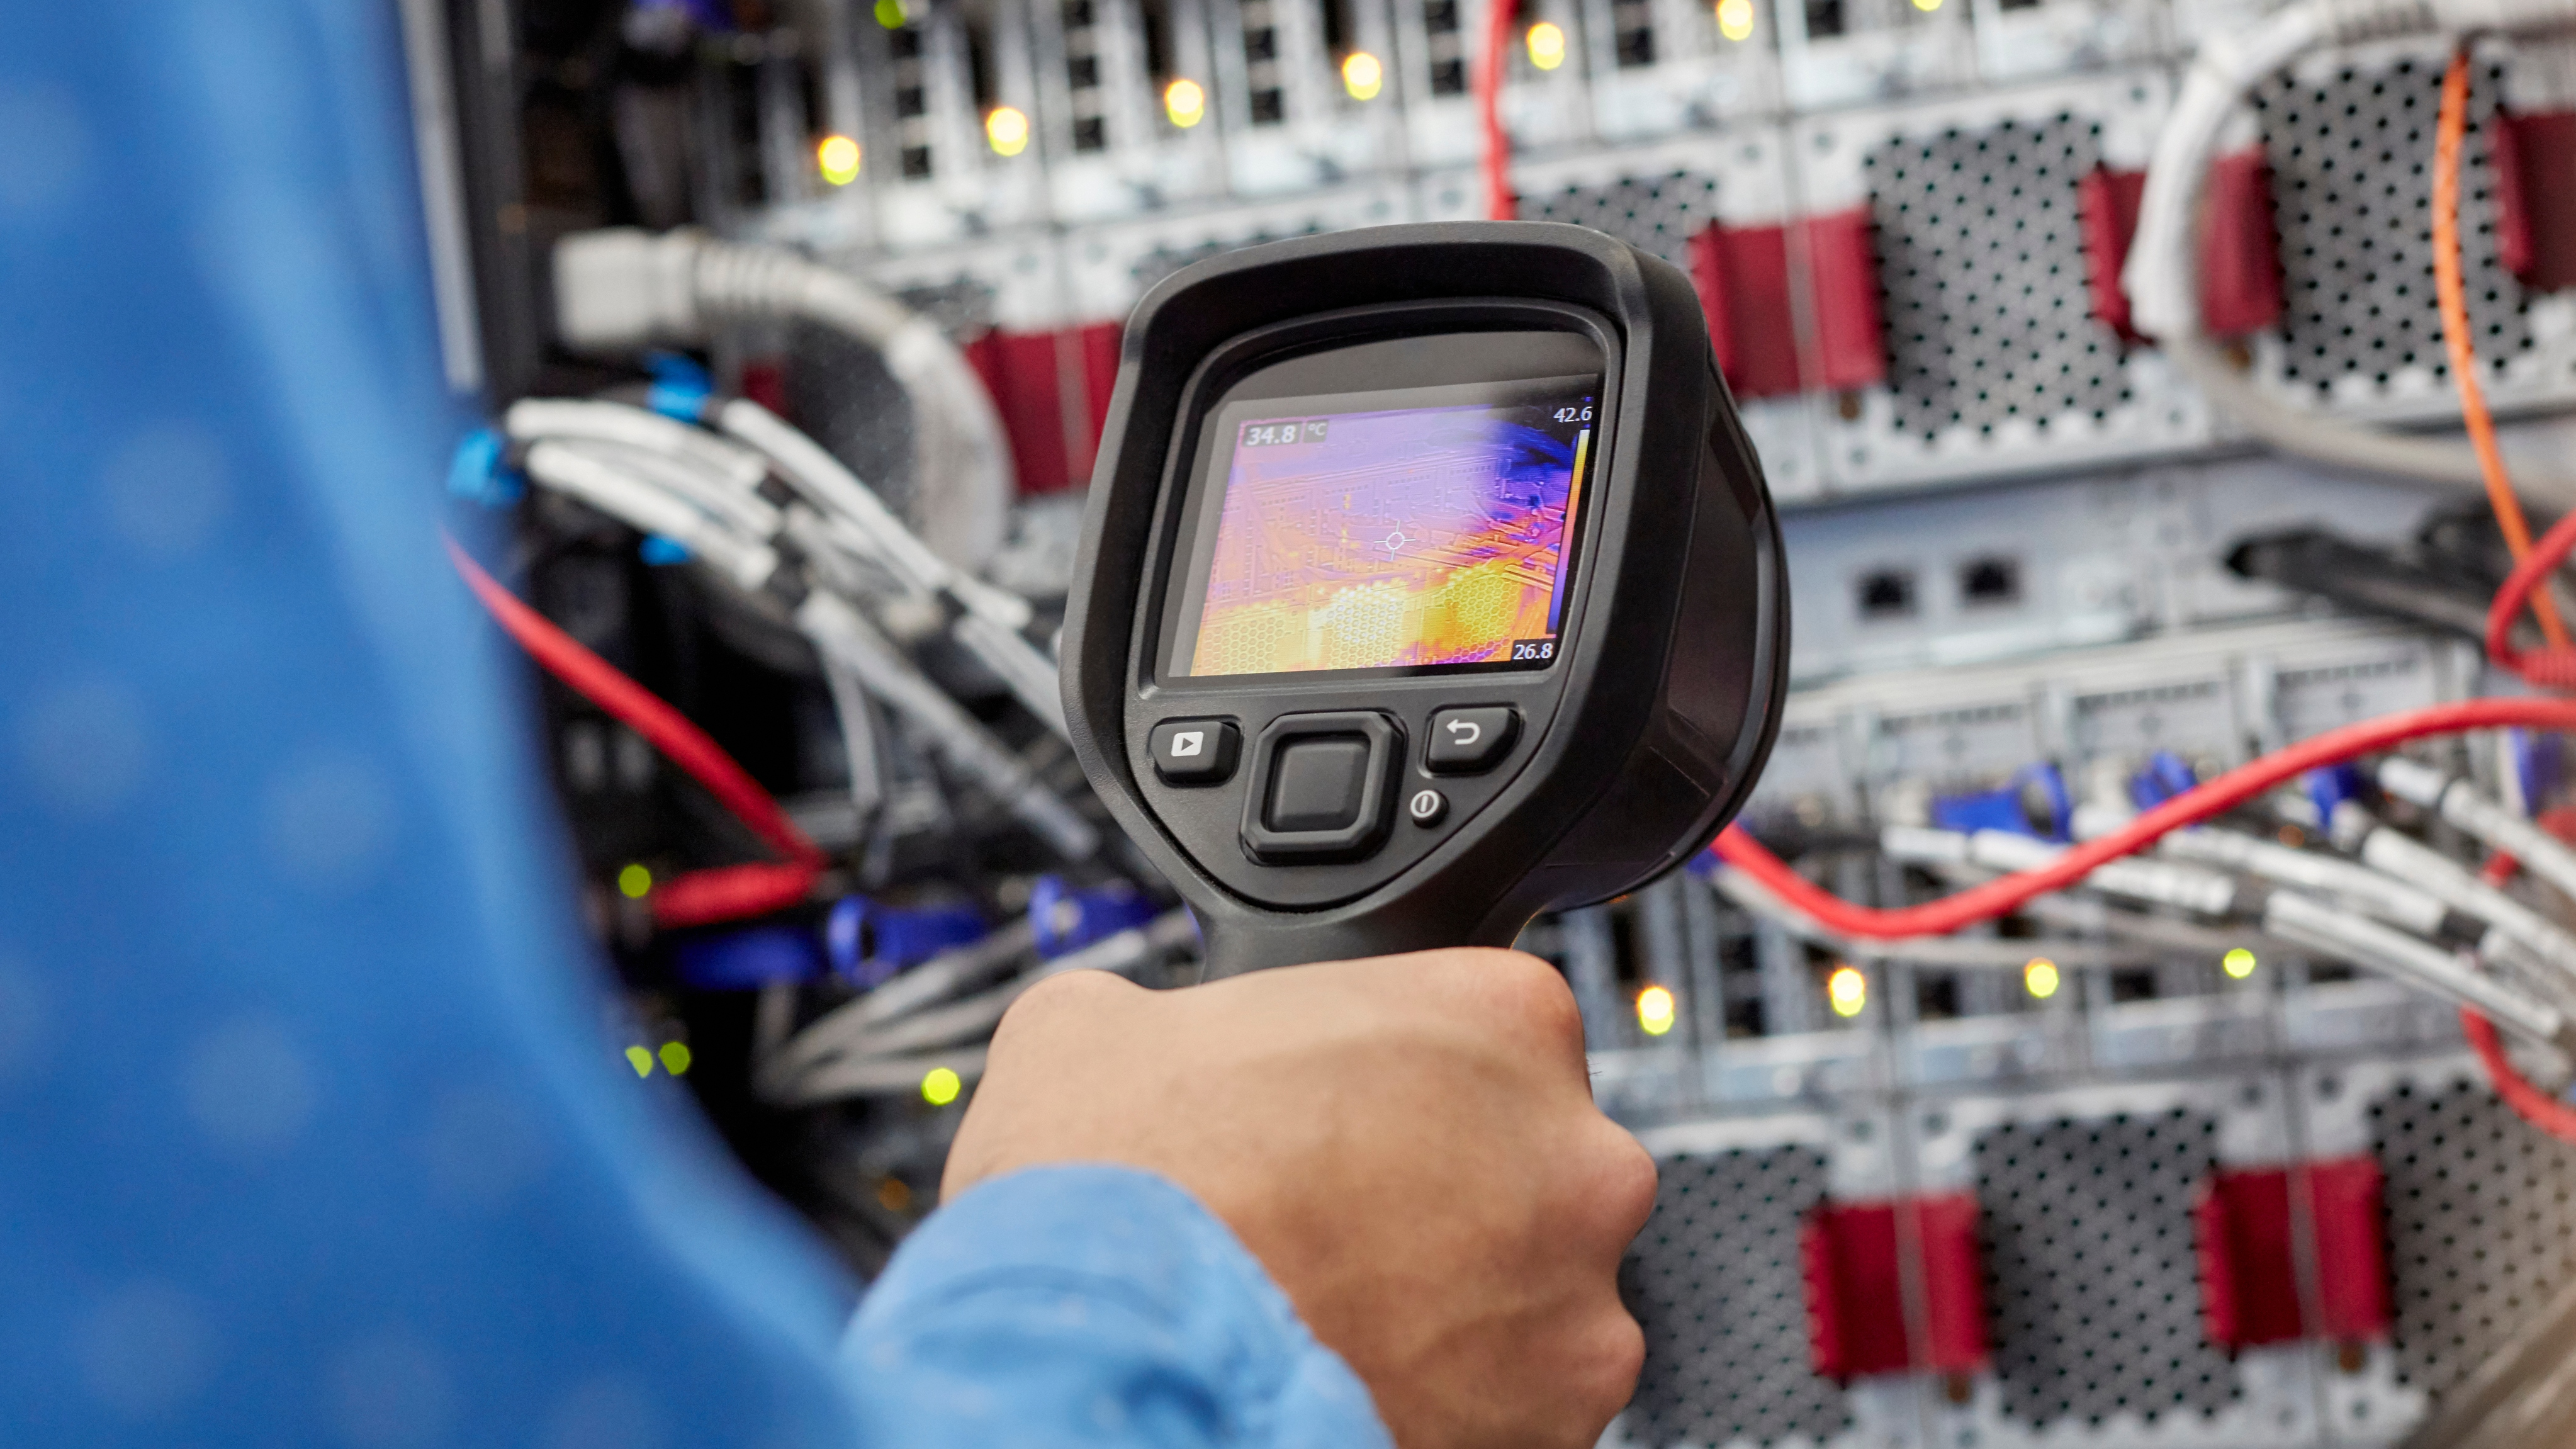 IT technician using diagnostic thermal imagining camera equipment in server room